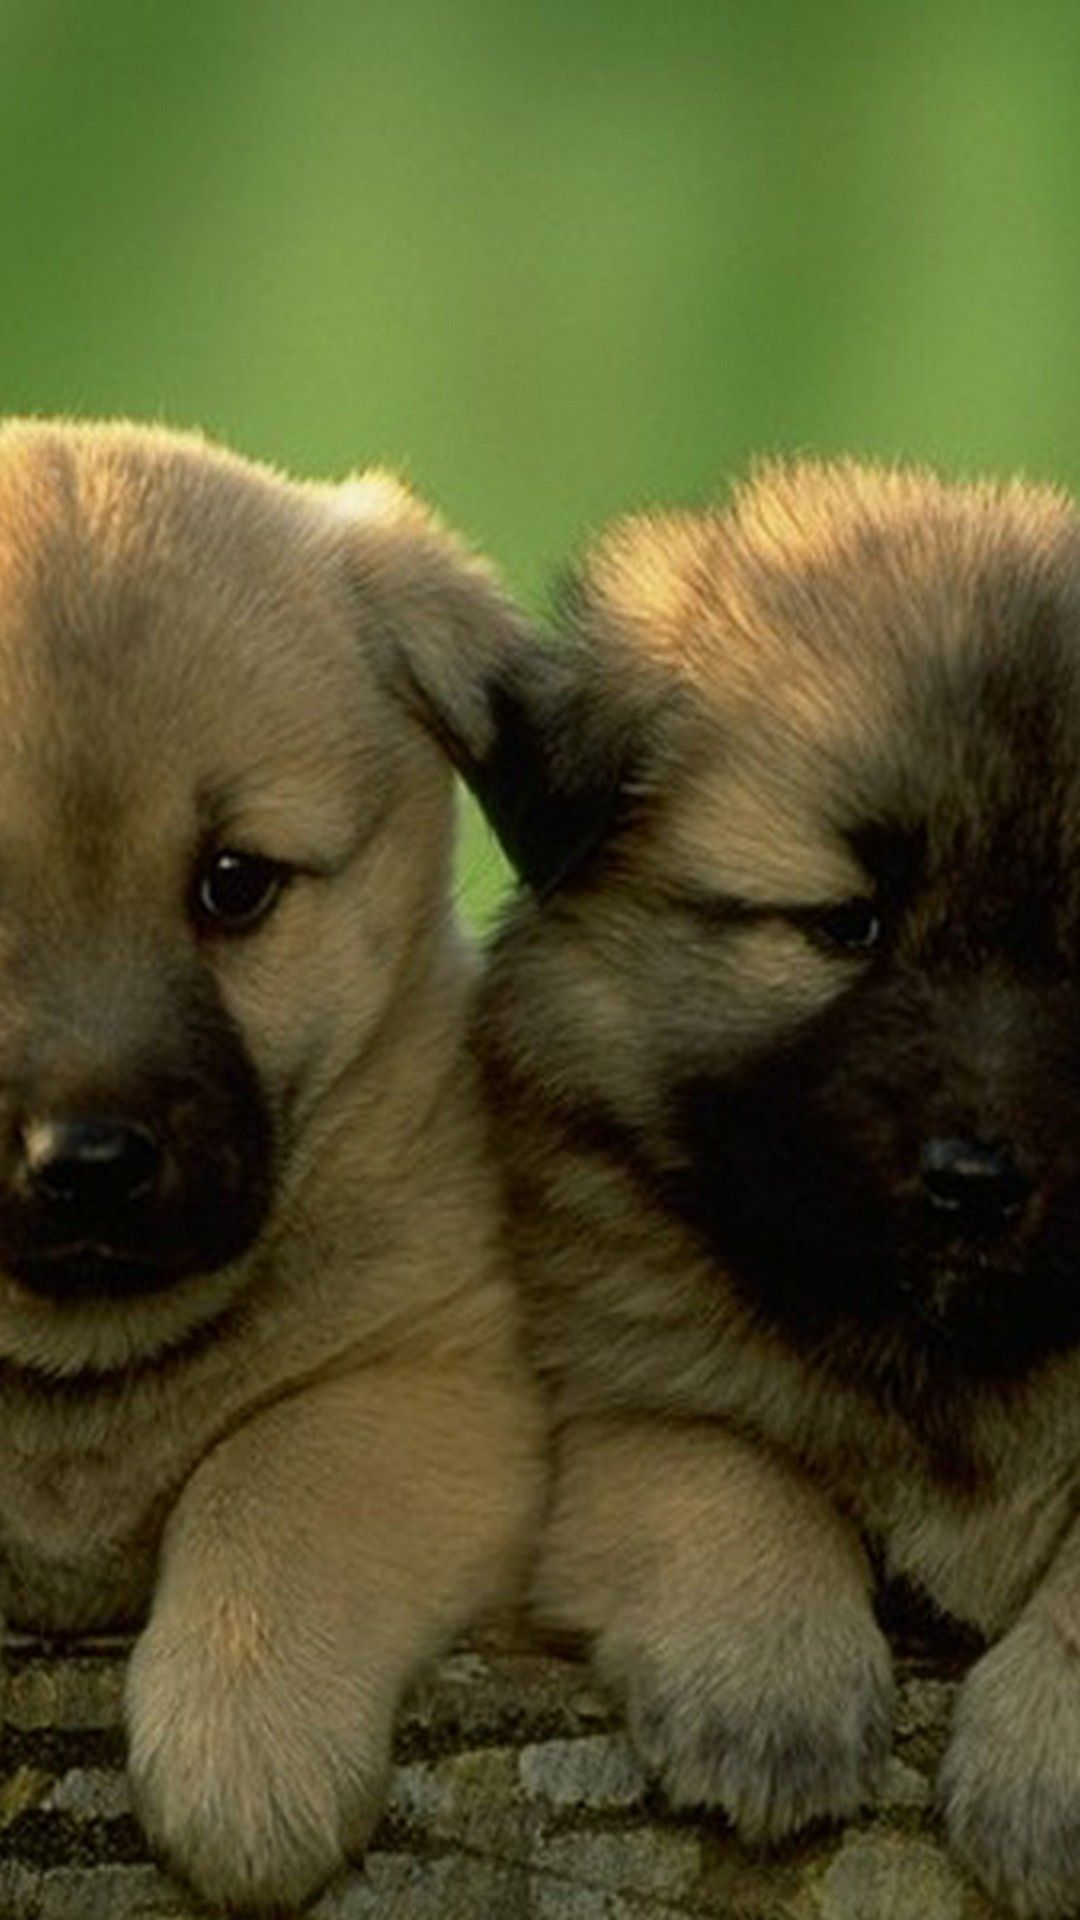 Cute Puppies Pictures Hd Wallpapers For Android Best Android Wallpapers Cute Puppy Pictures Puppy Pictures Cute Puppies